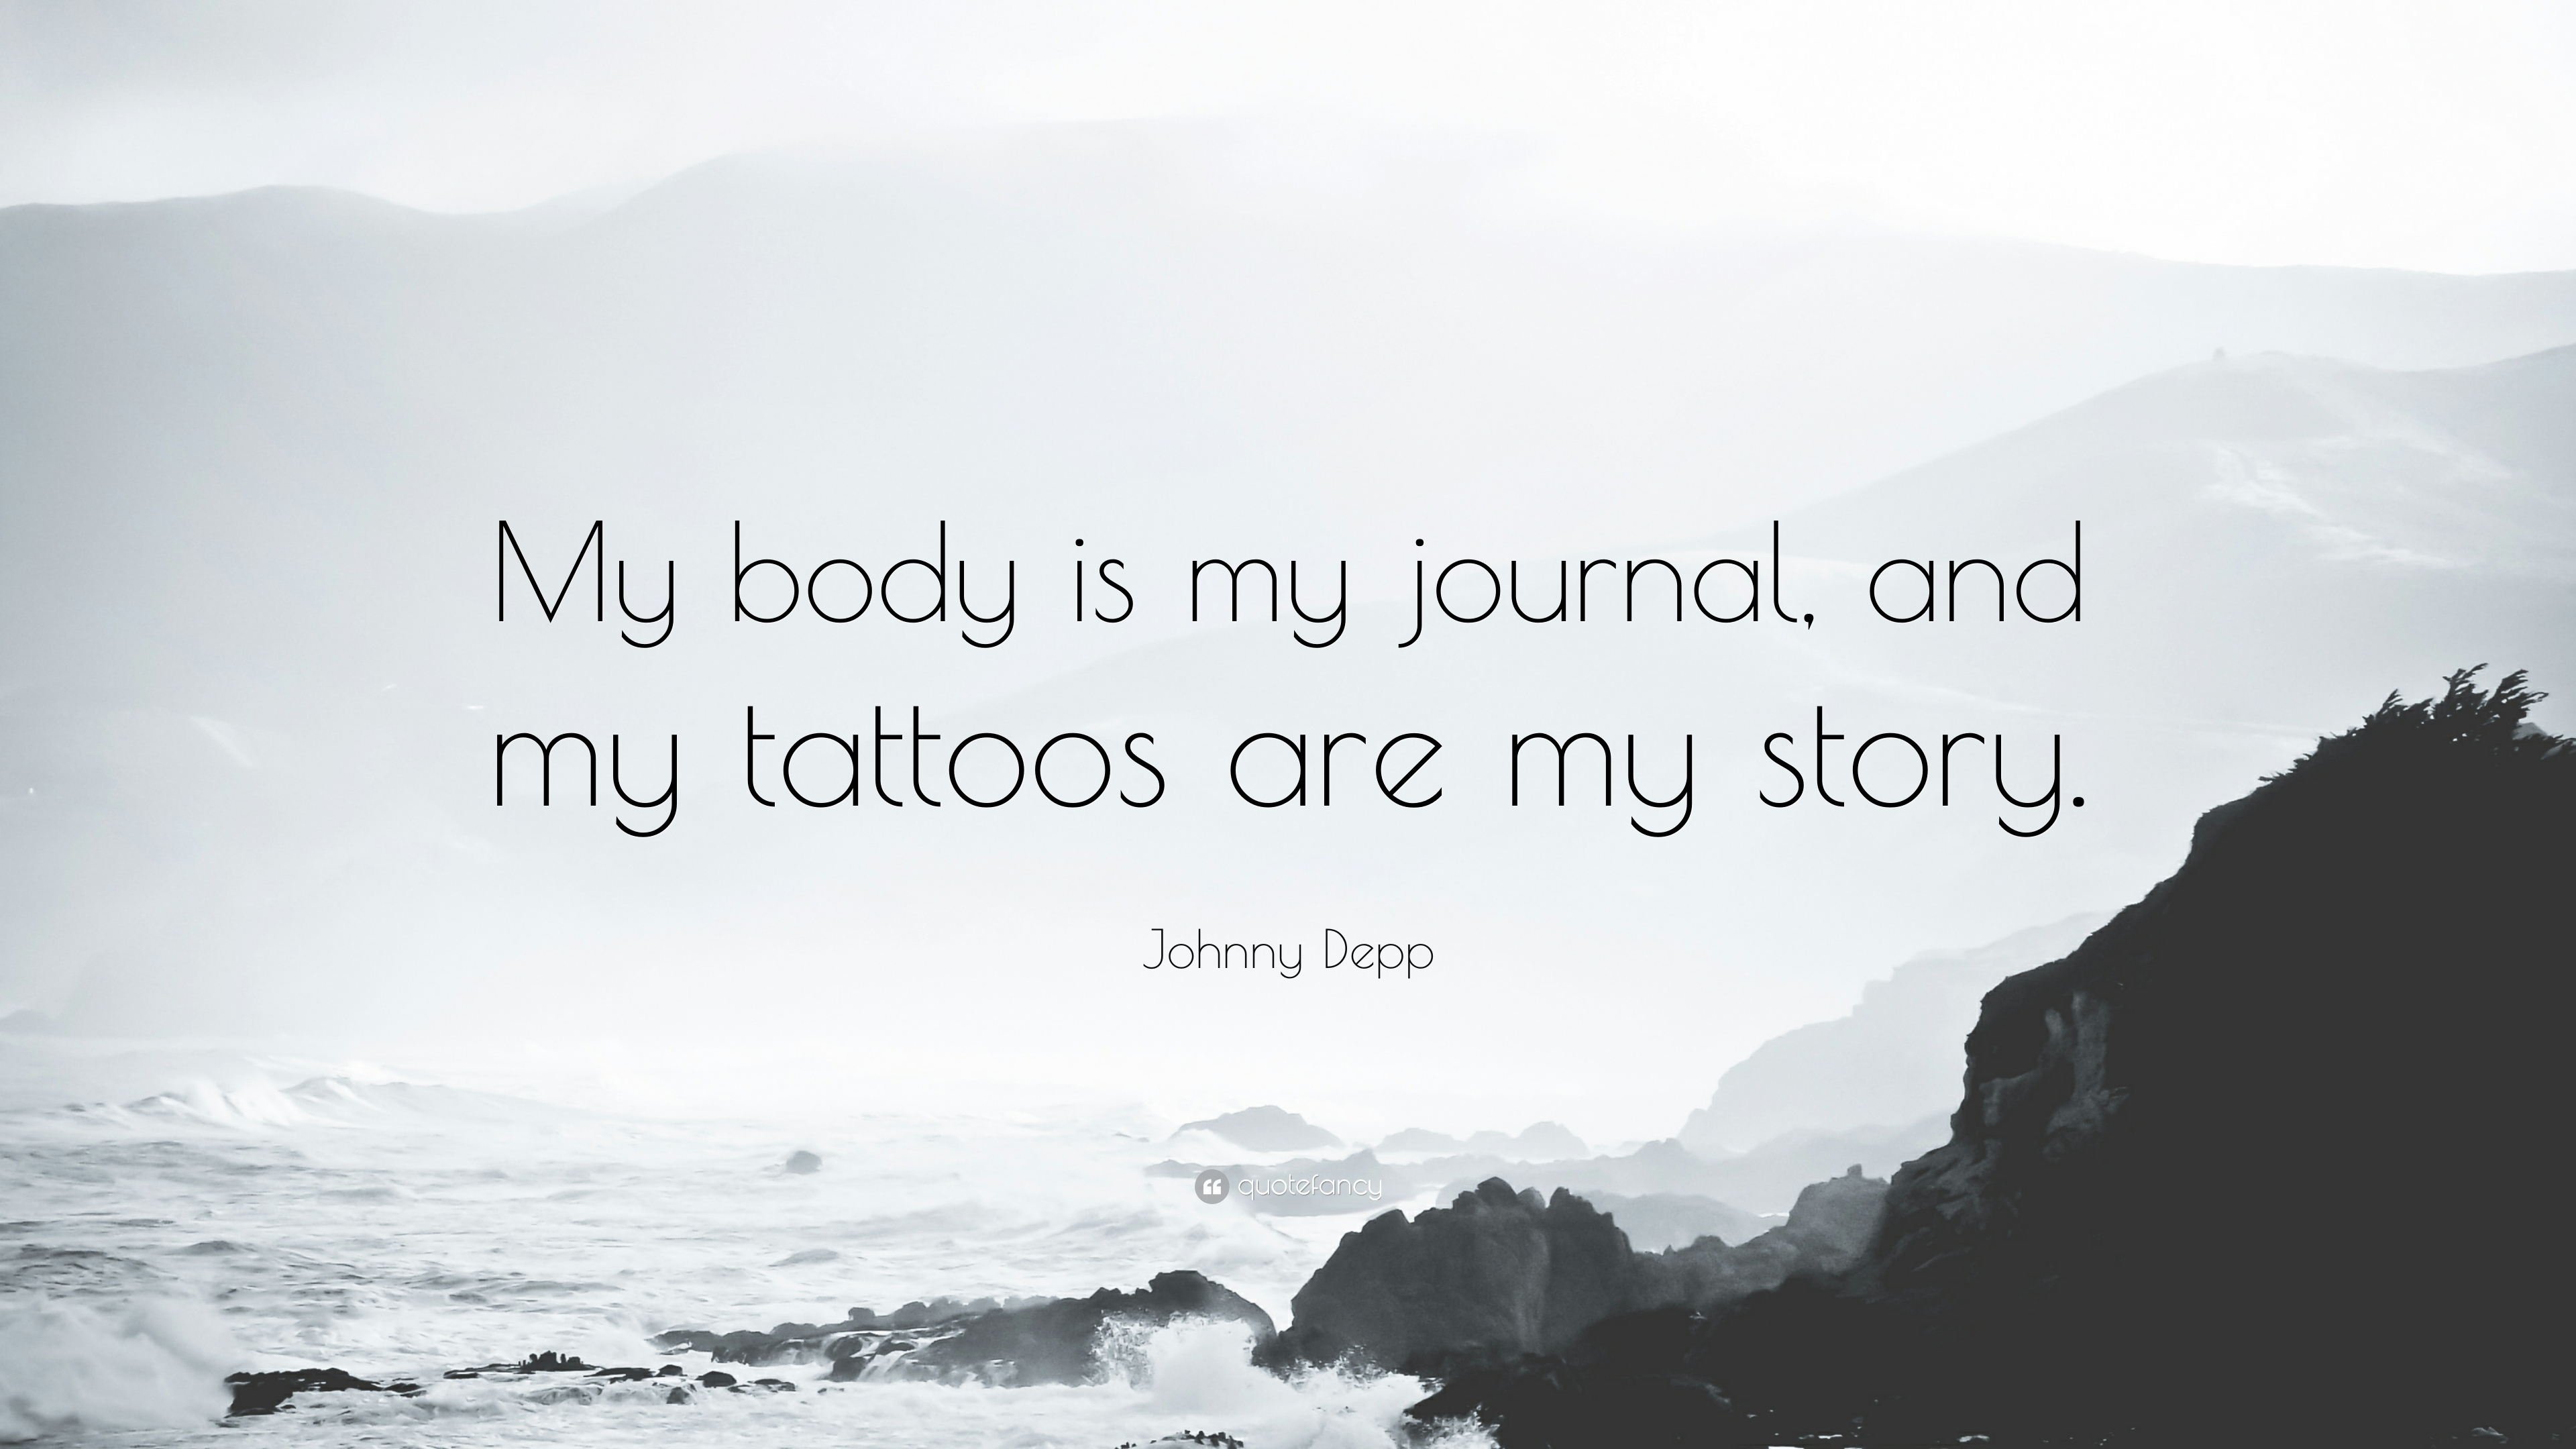 Quotes About Body 40 Wallpapers Quotefancy